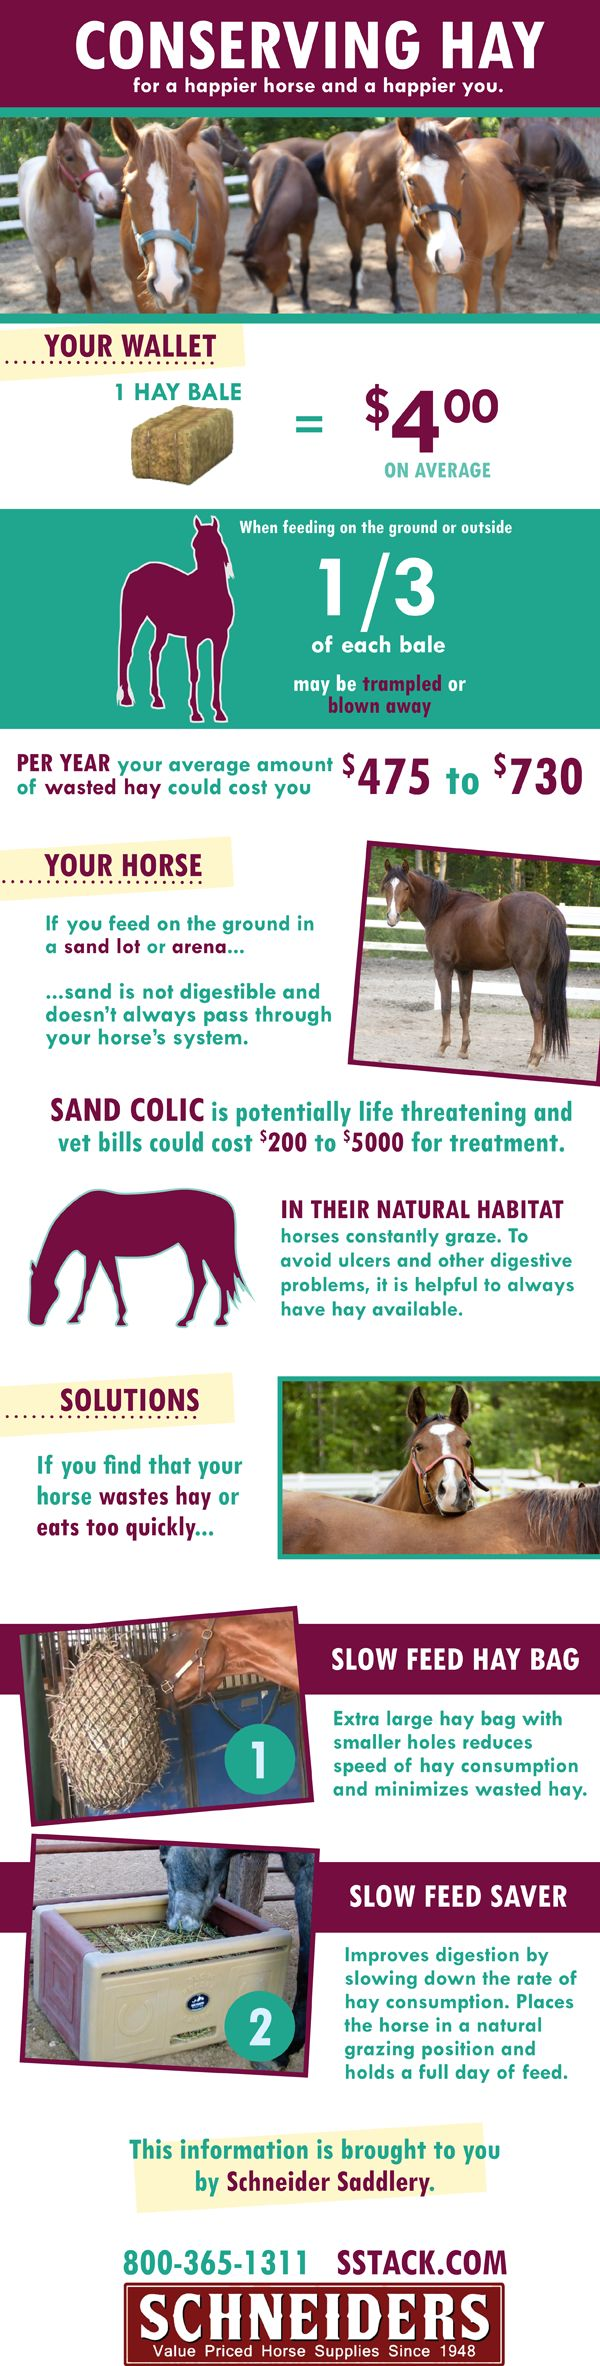 Conserving hay. Products we offer that can help you save!